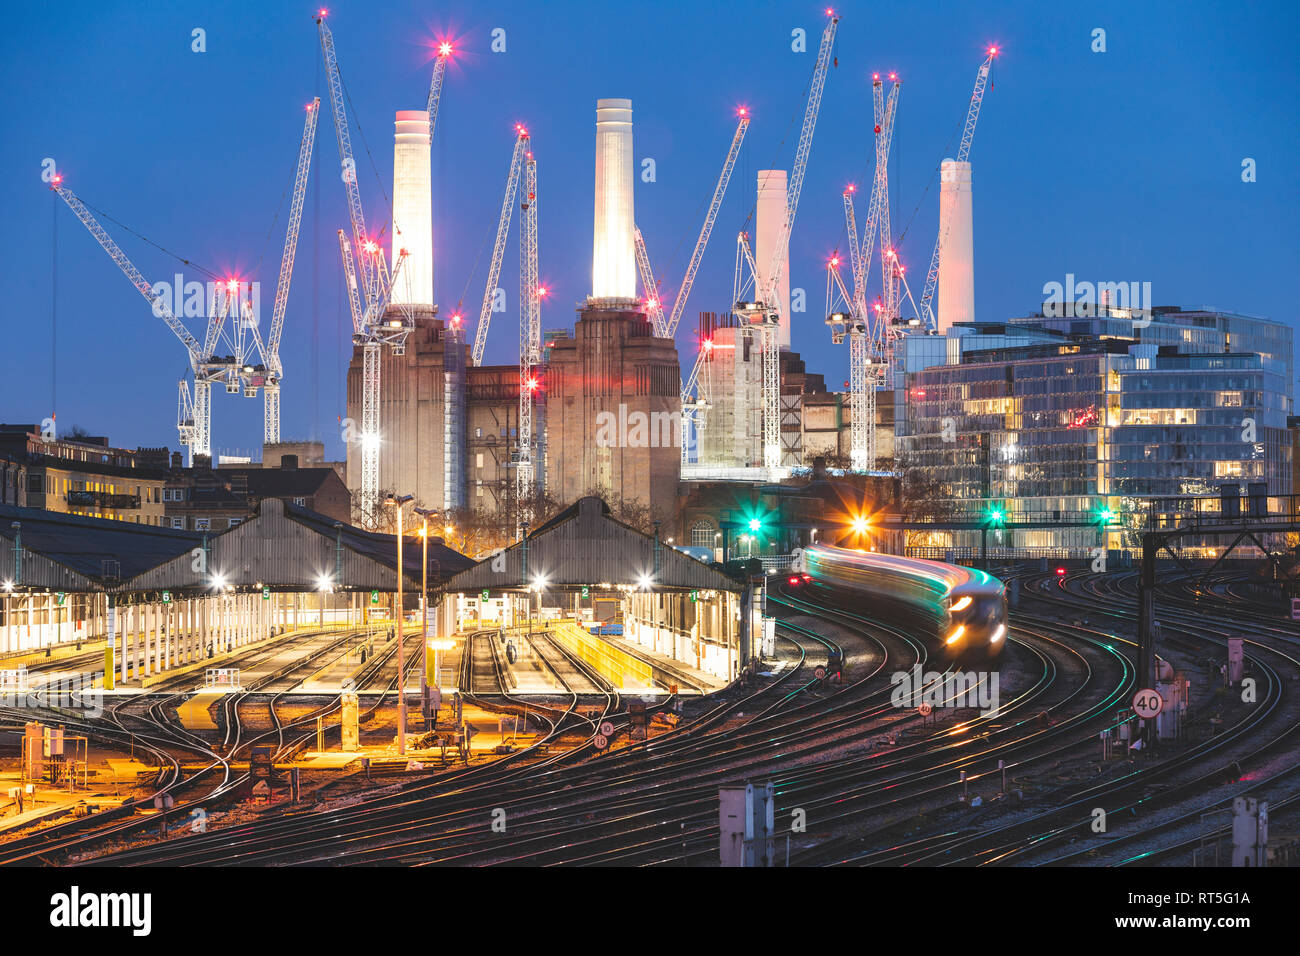 United Kingdom, England, London, view of railtracks and trains in the evening, former Battersea Power Station and cranes in the background - Stock Image